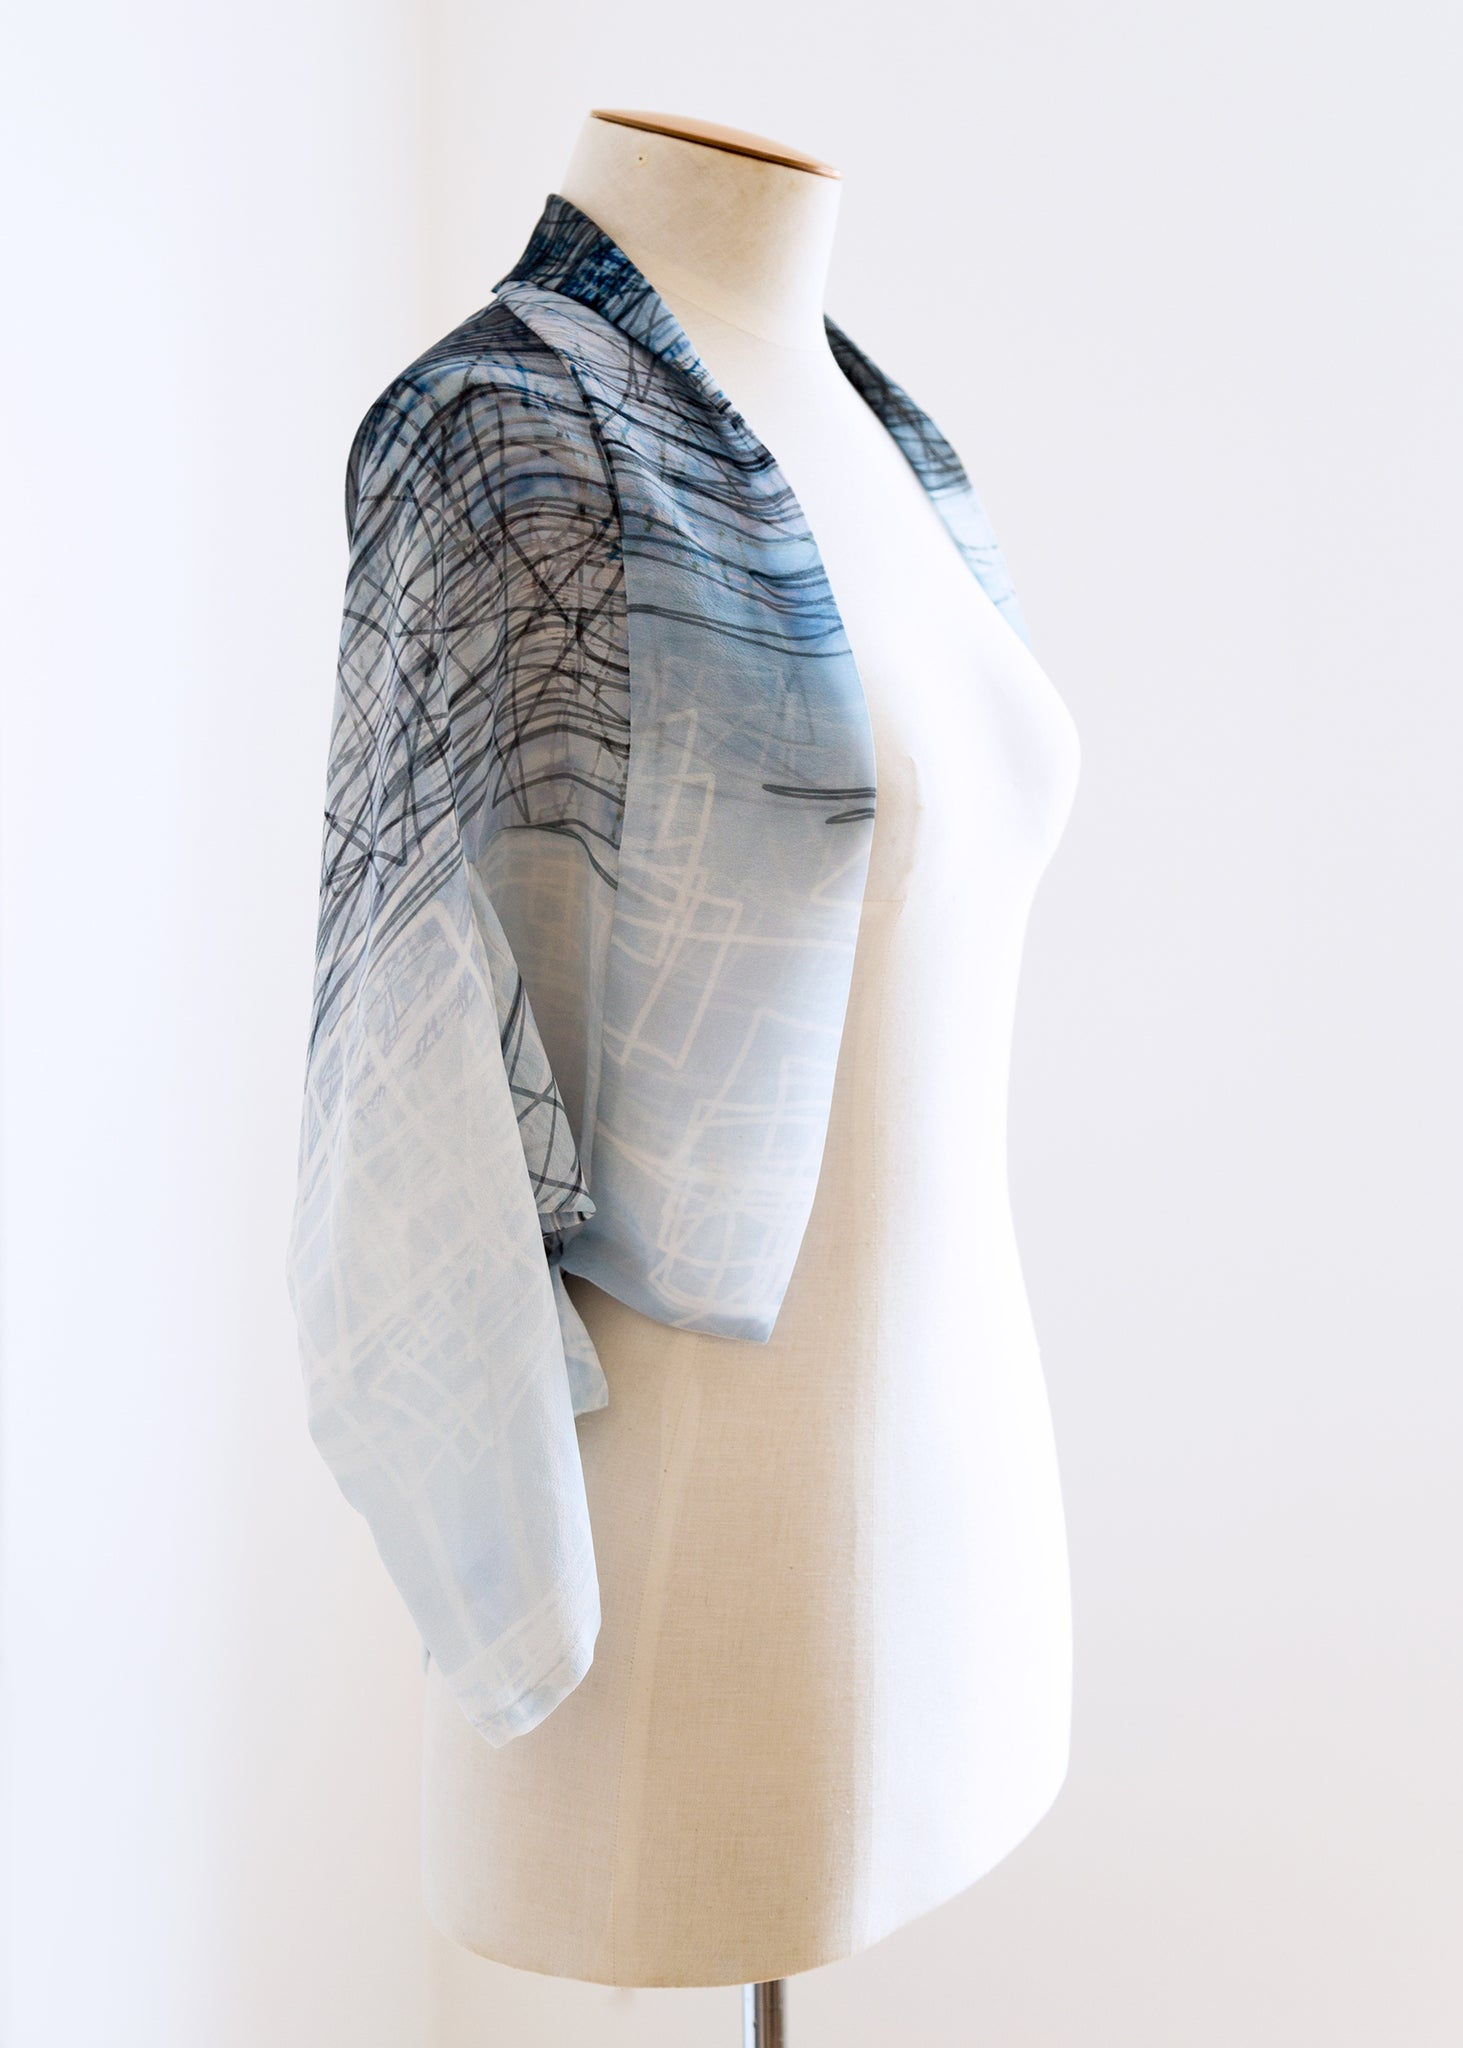 Heads or Tails Soft Jacket White Square Scribble, ethical fashion, sustainable fashion, designer clothes, plus size clothing, textile print clothing, luxury online fashion, slow fashion